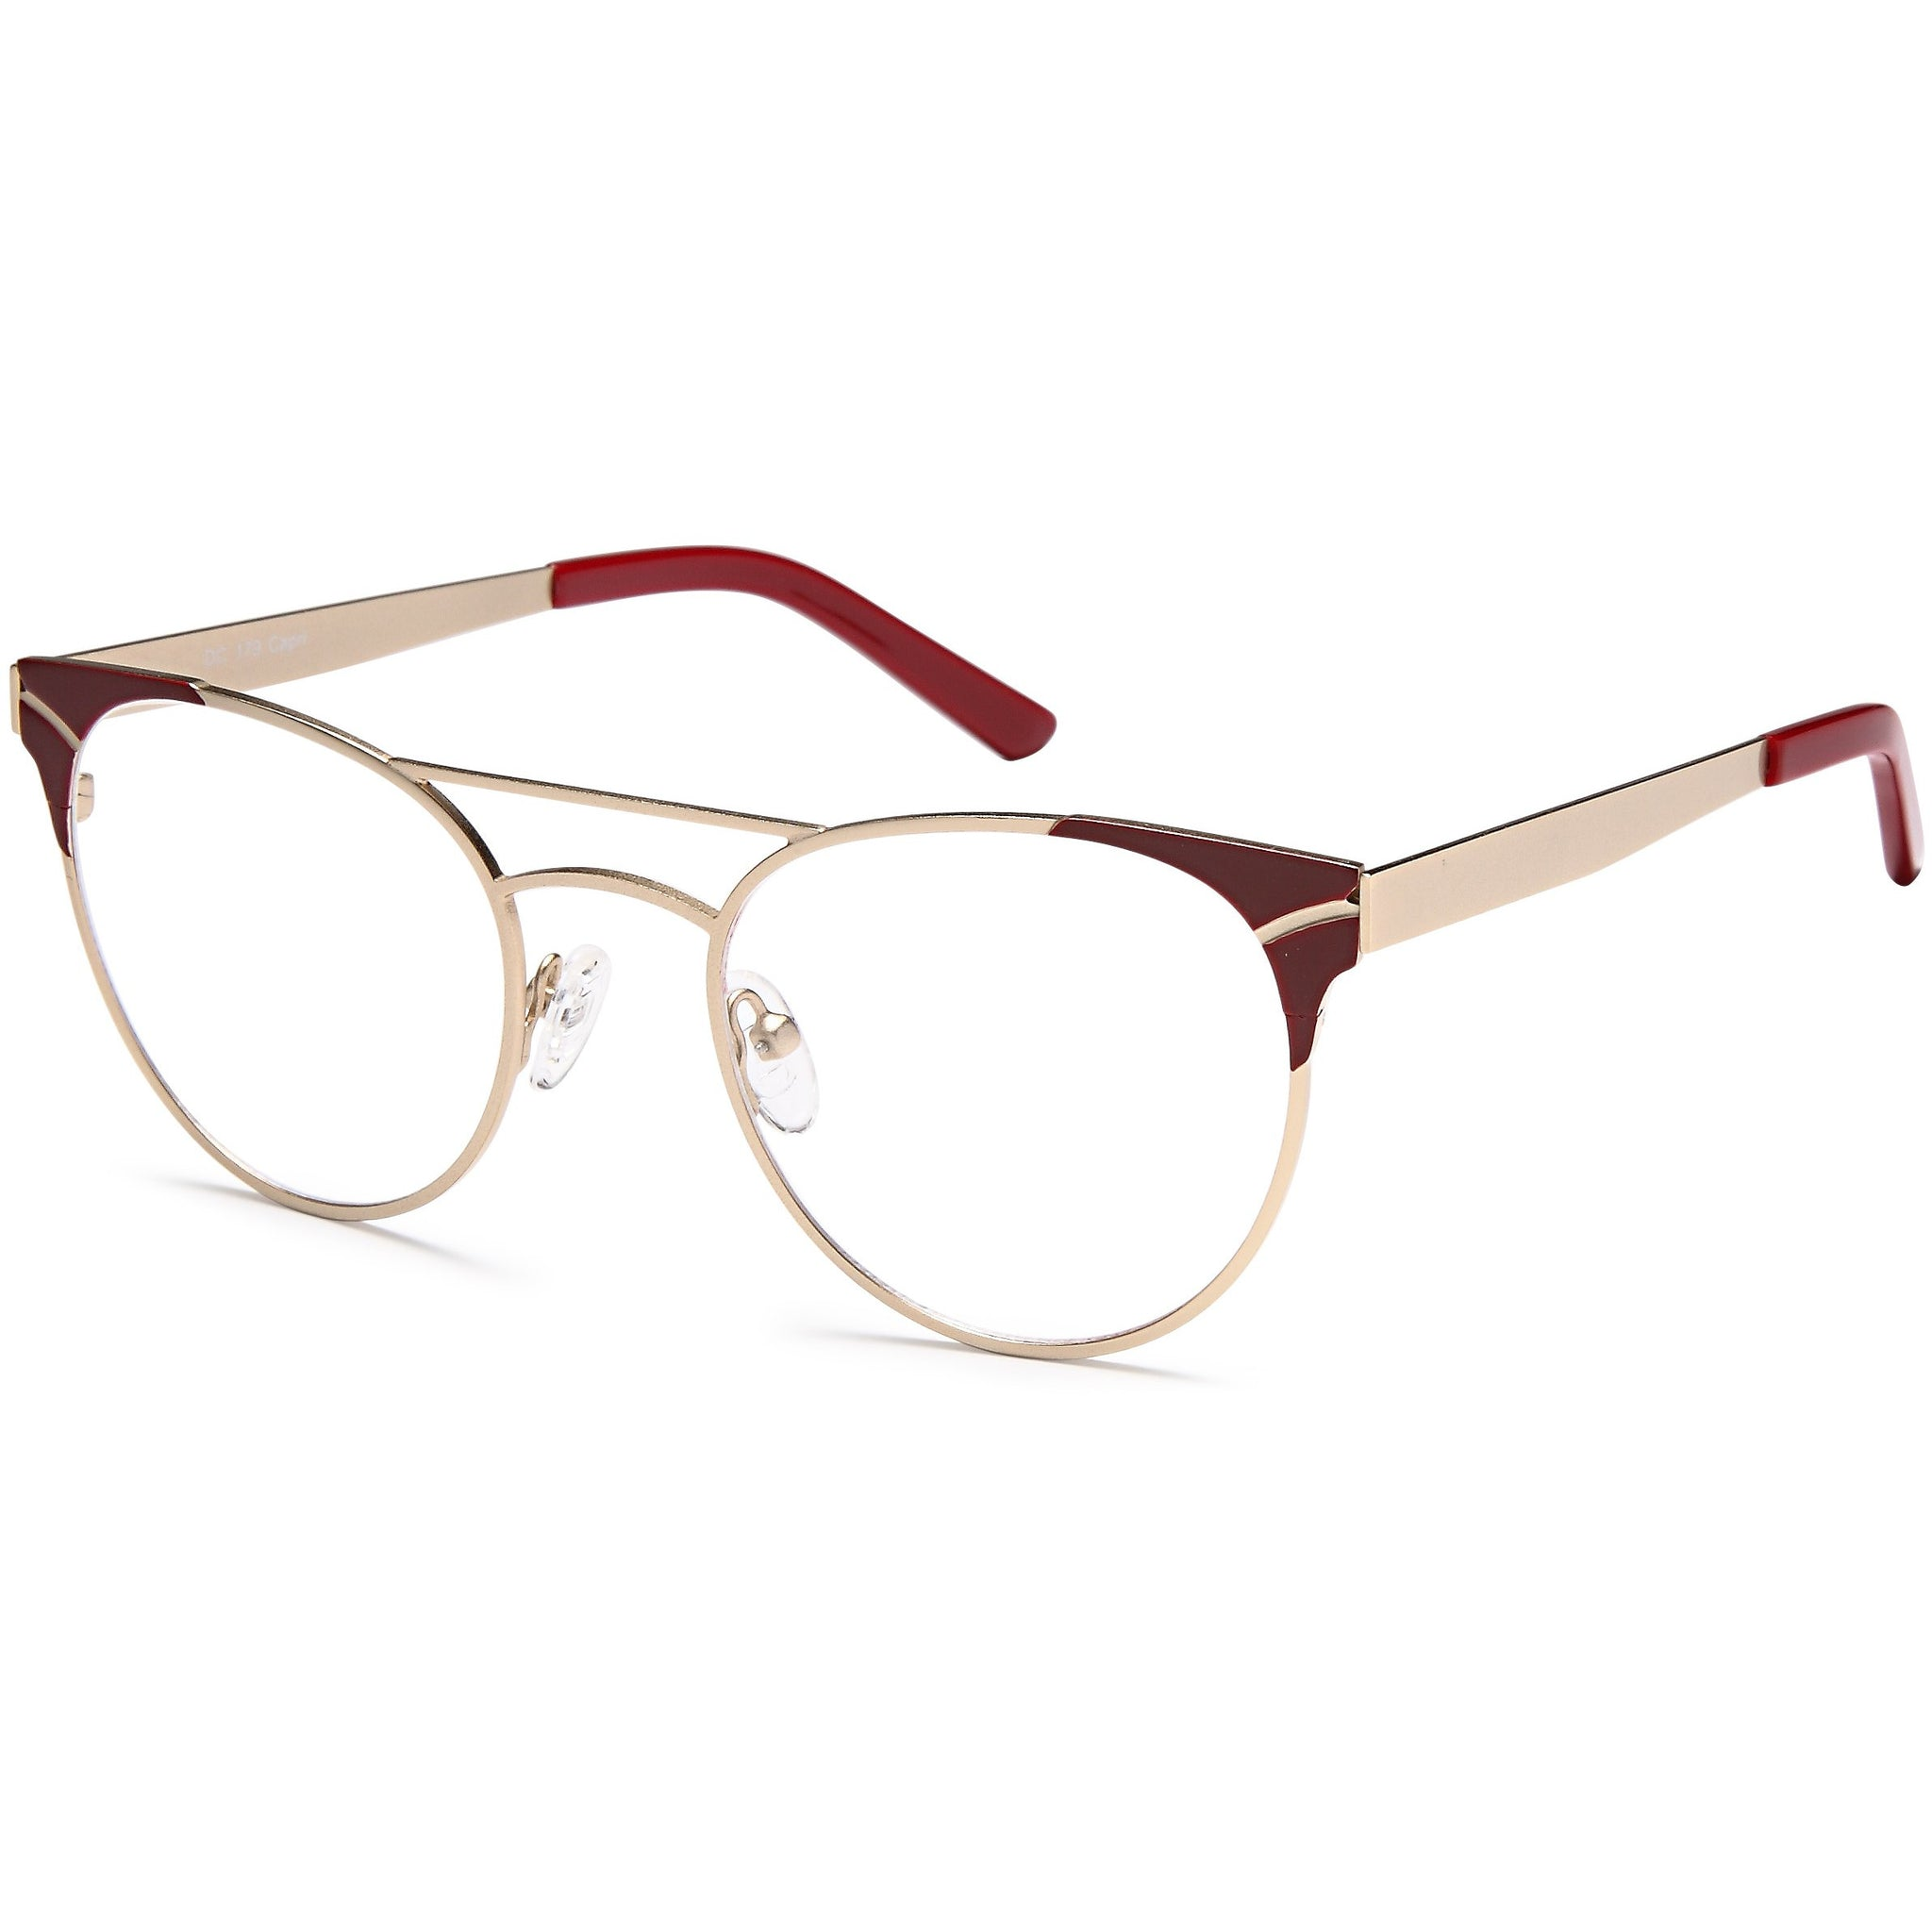 Leonardo Prescription Glasses DC 179 Eyeglasses Frame